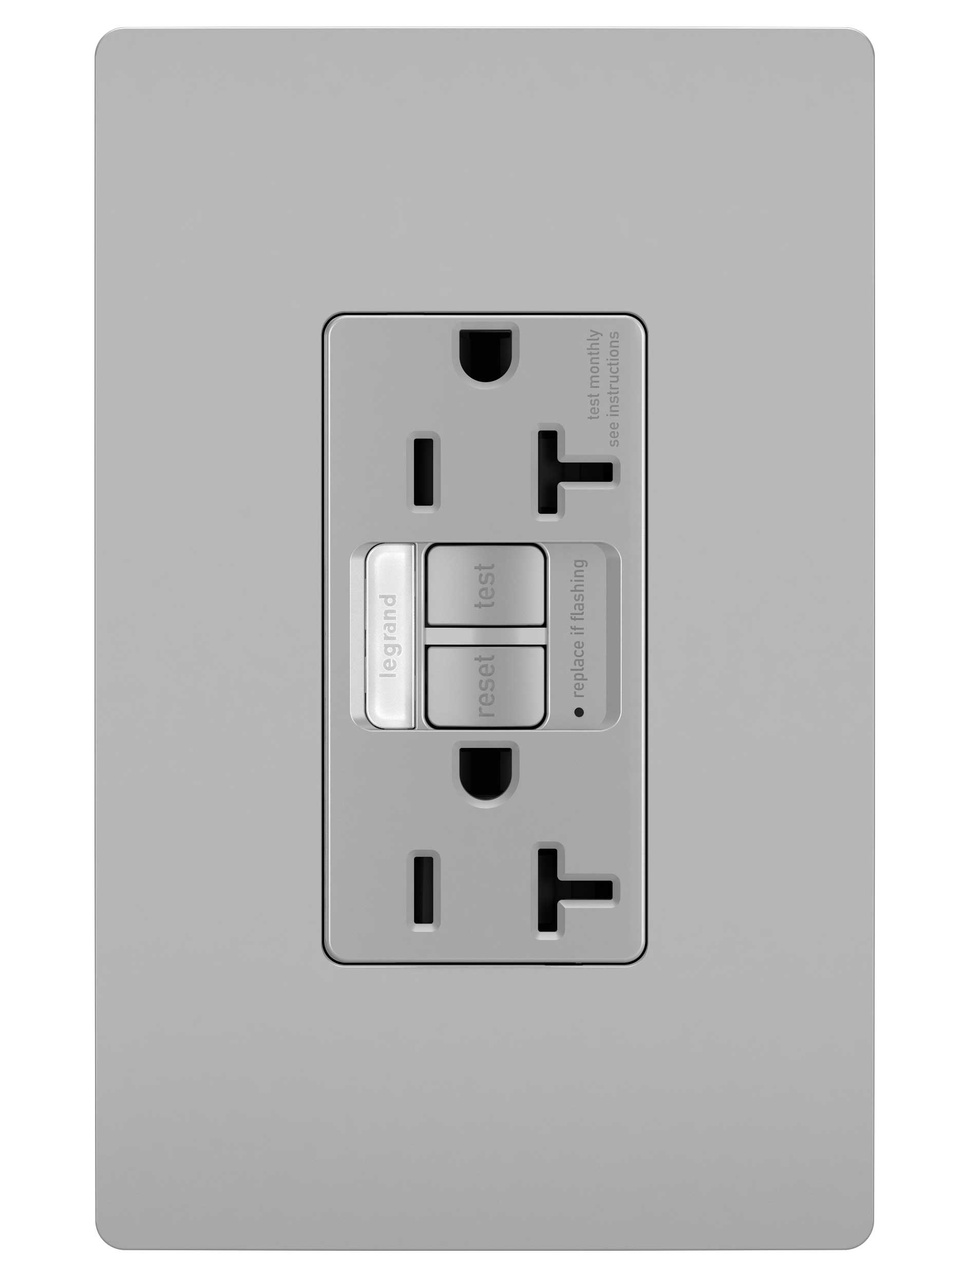 Night Light Gfci Outlet Wiring - Block And Schematic Diagrams •